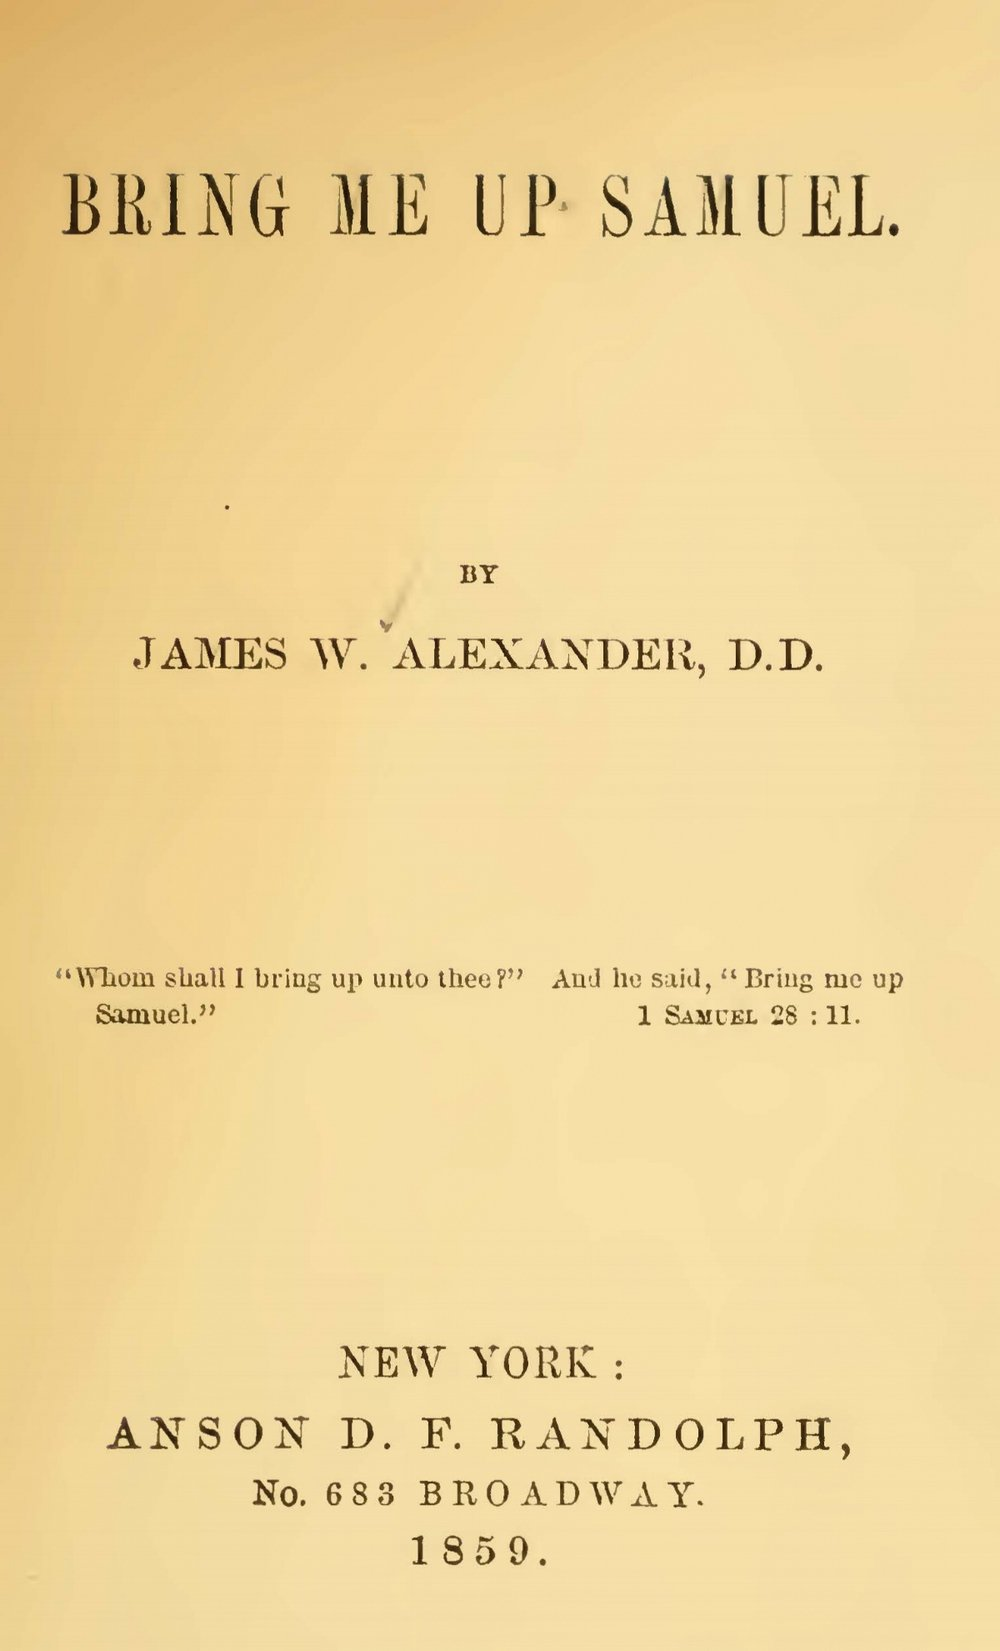 Alexander, James Waddel, Bring Me Up Samuel Title Page.jpg